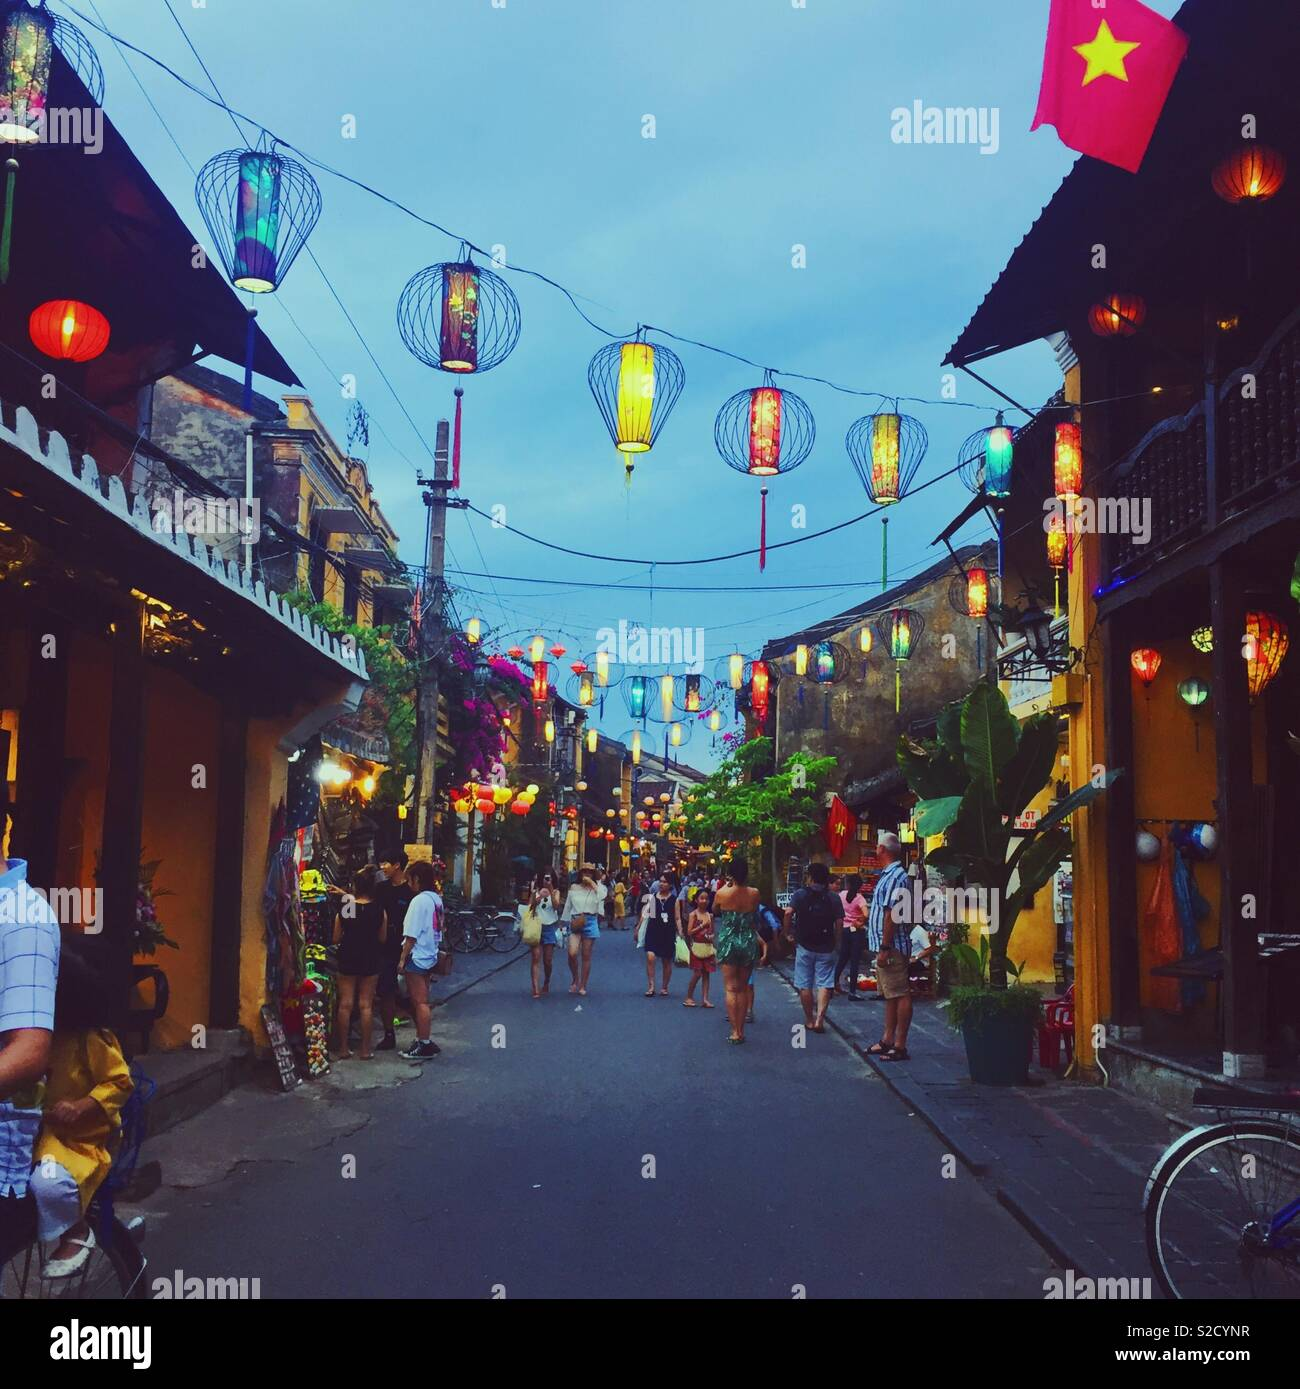 Colourful lanterns in a busy street in the ancient town in Hoi An, Vietnam - Stock Image